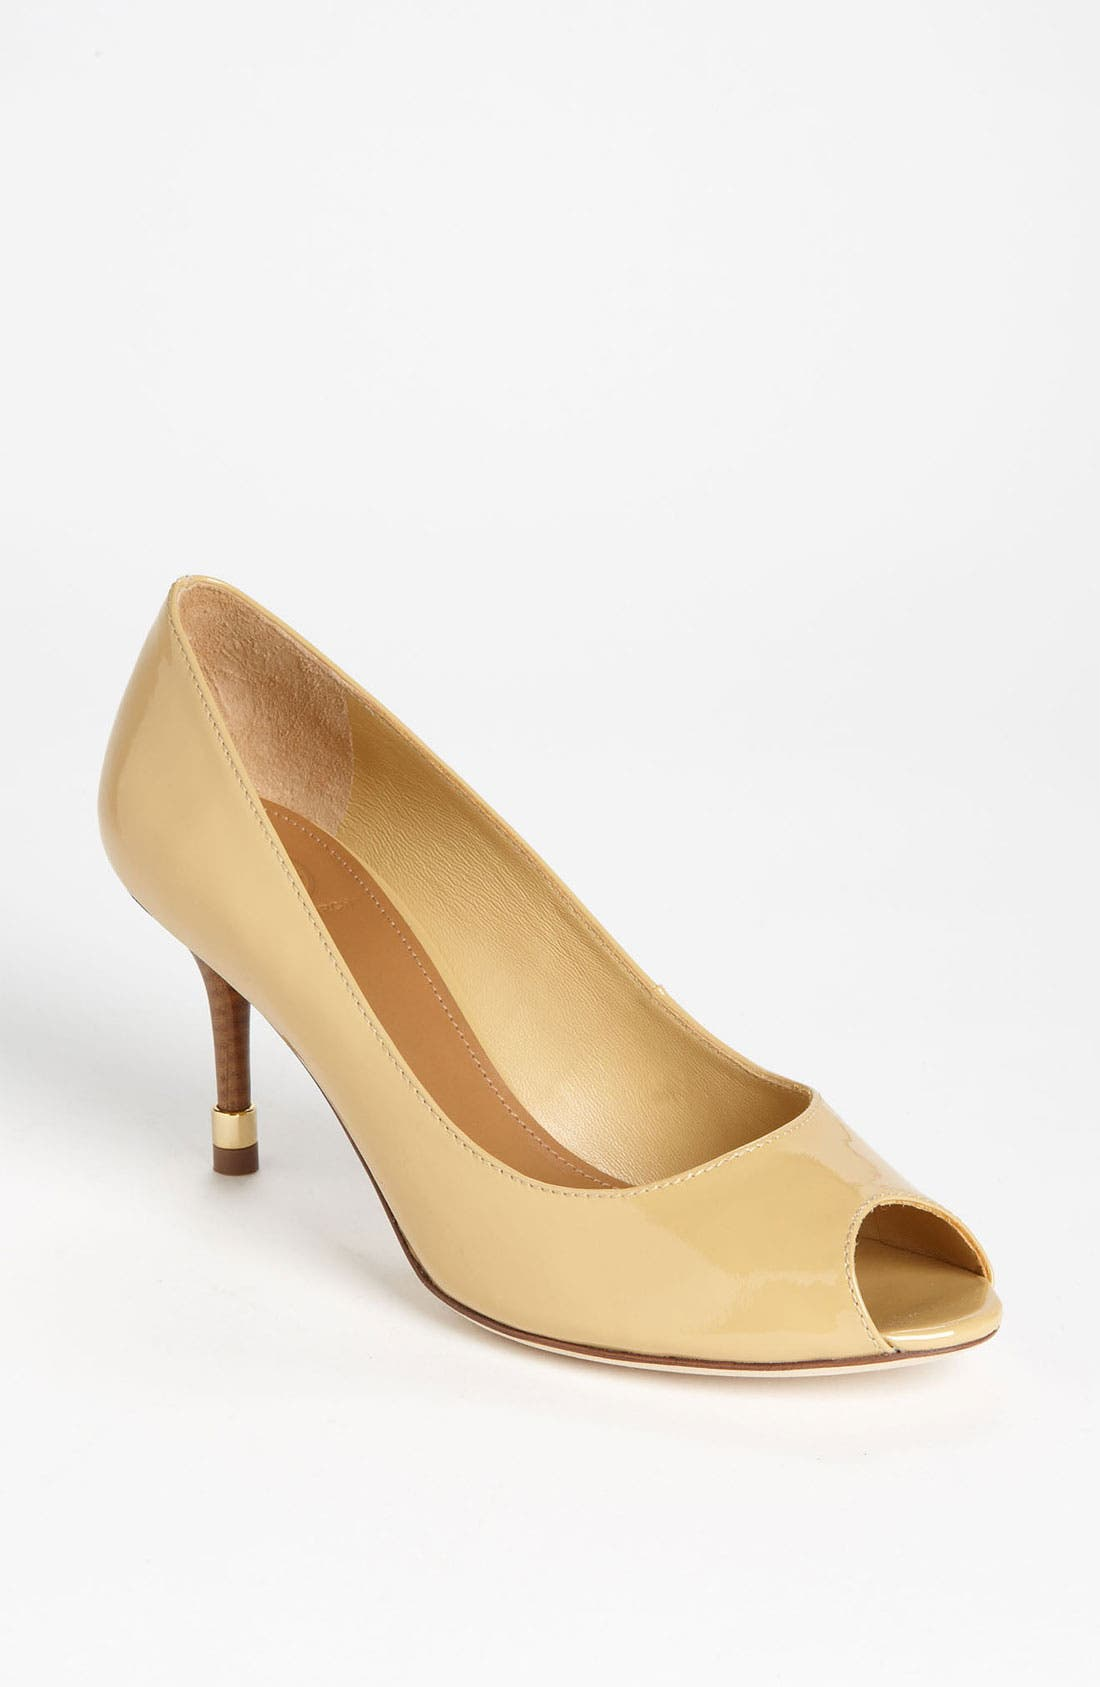 Alternate Image 1 Selected - Tory Burch 'Rea' Pump